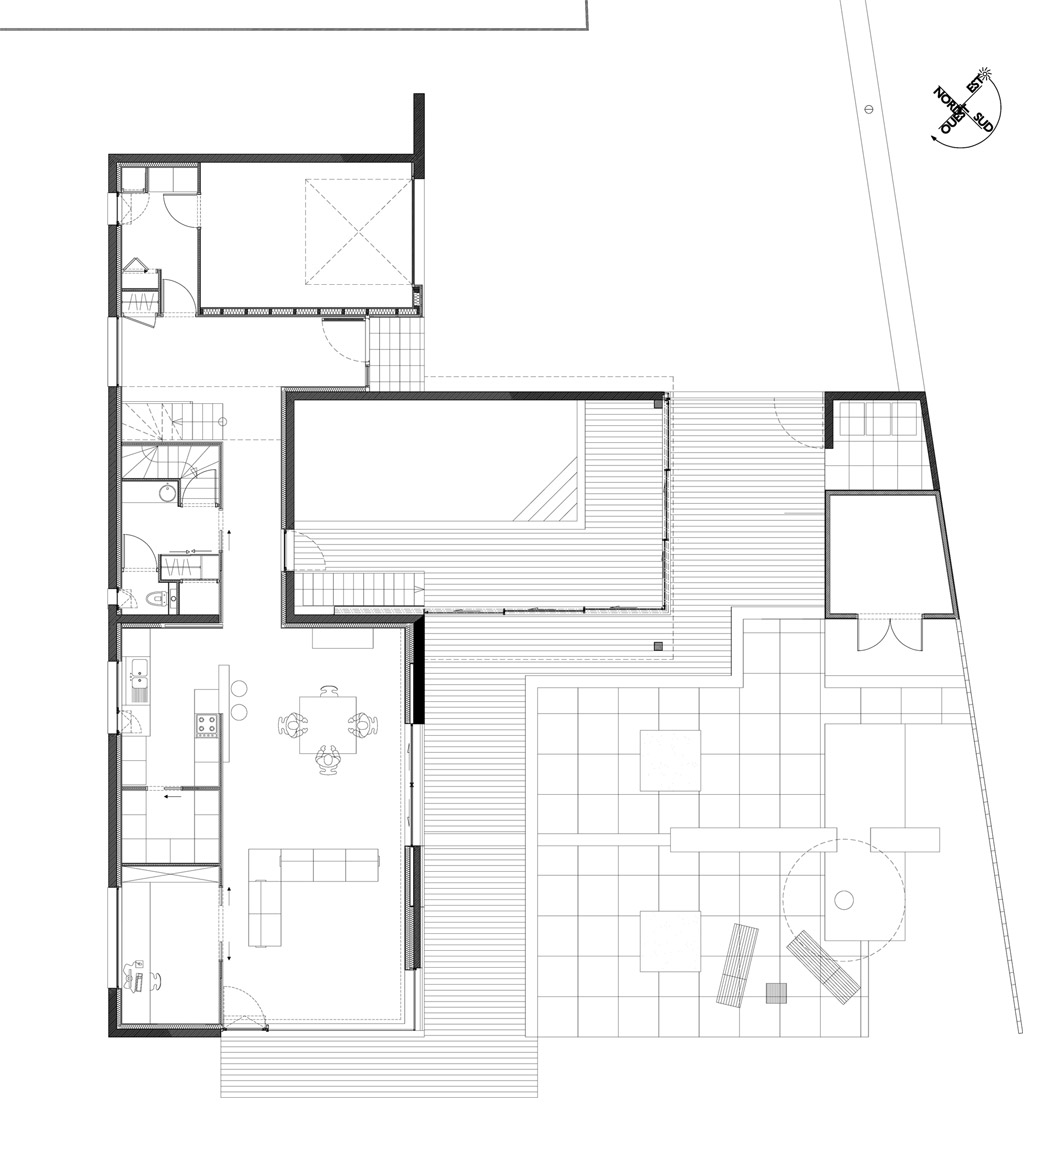 Maison contemporaine avec piscine int rieure apla for Plans maisons en u